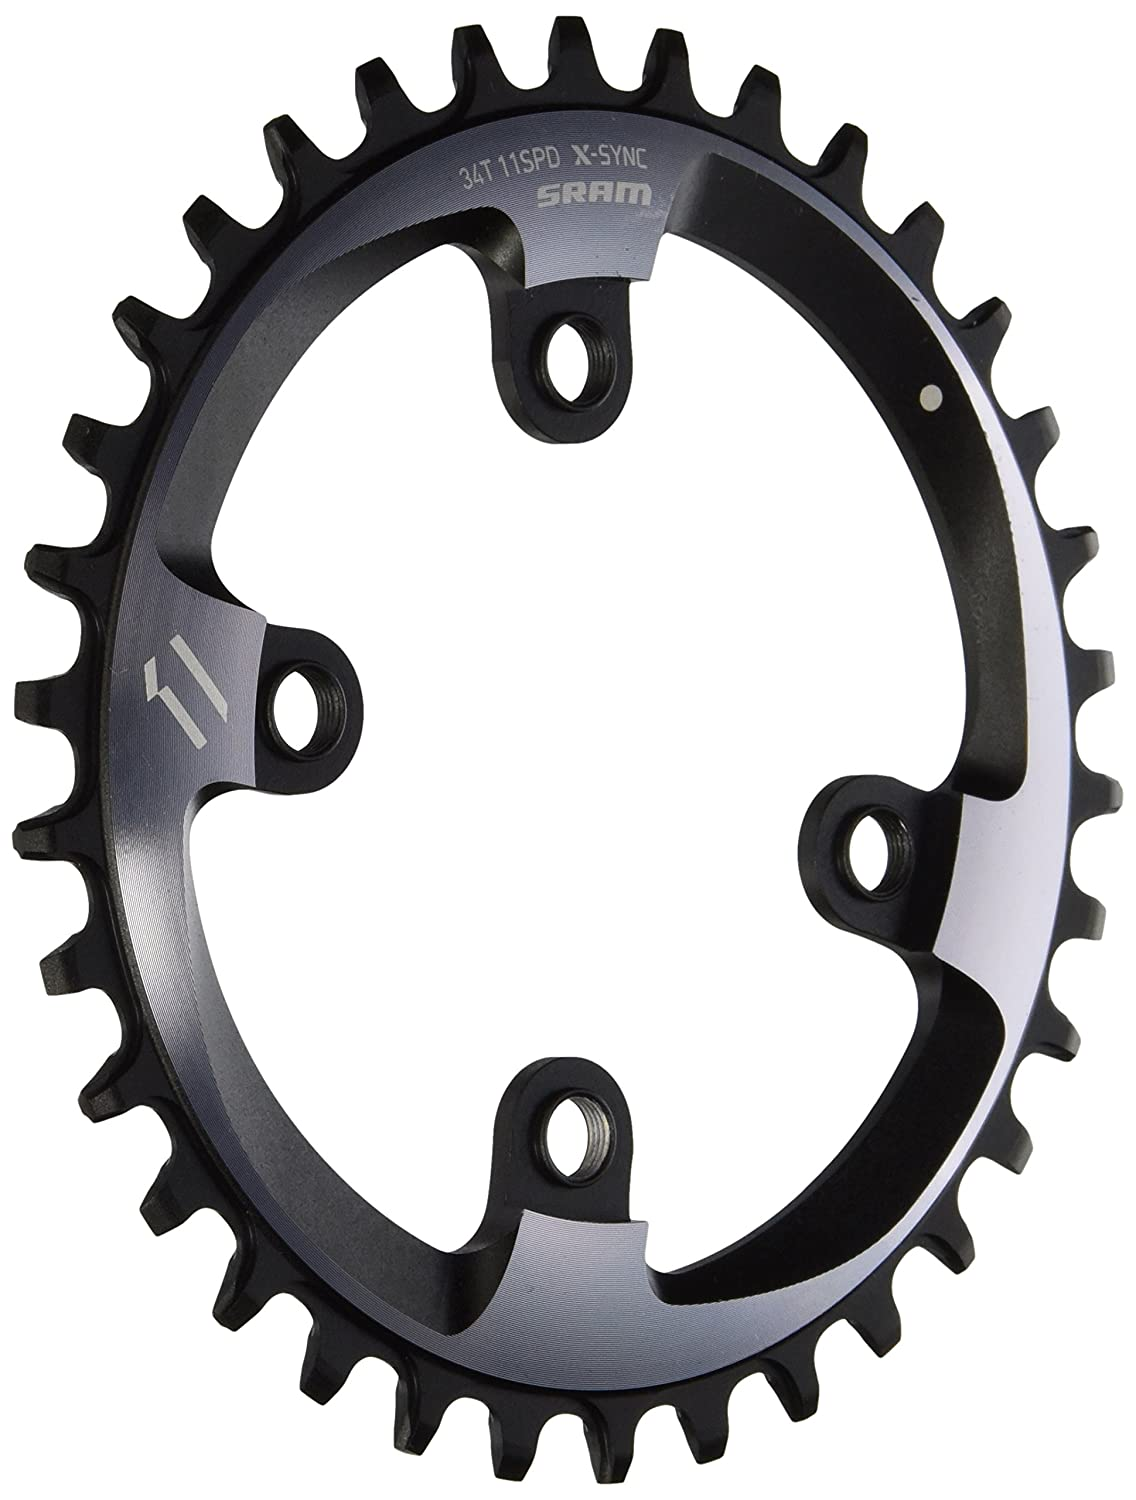 BLACKSPIRE 34t x 94mm NW Narrow Wide Bike Chain Ring 1x11 10 9 fit SRAM X01 X1